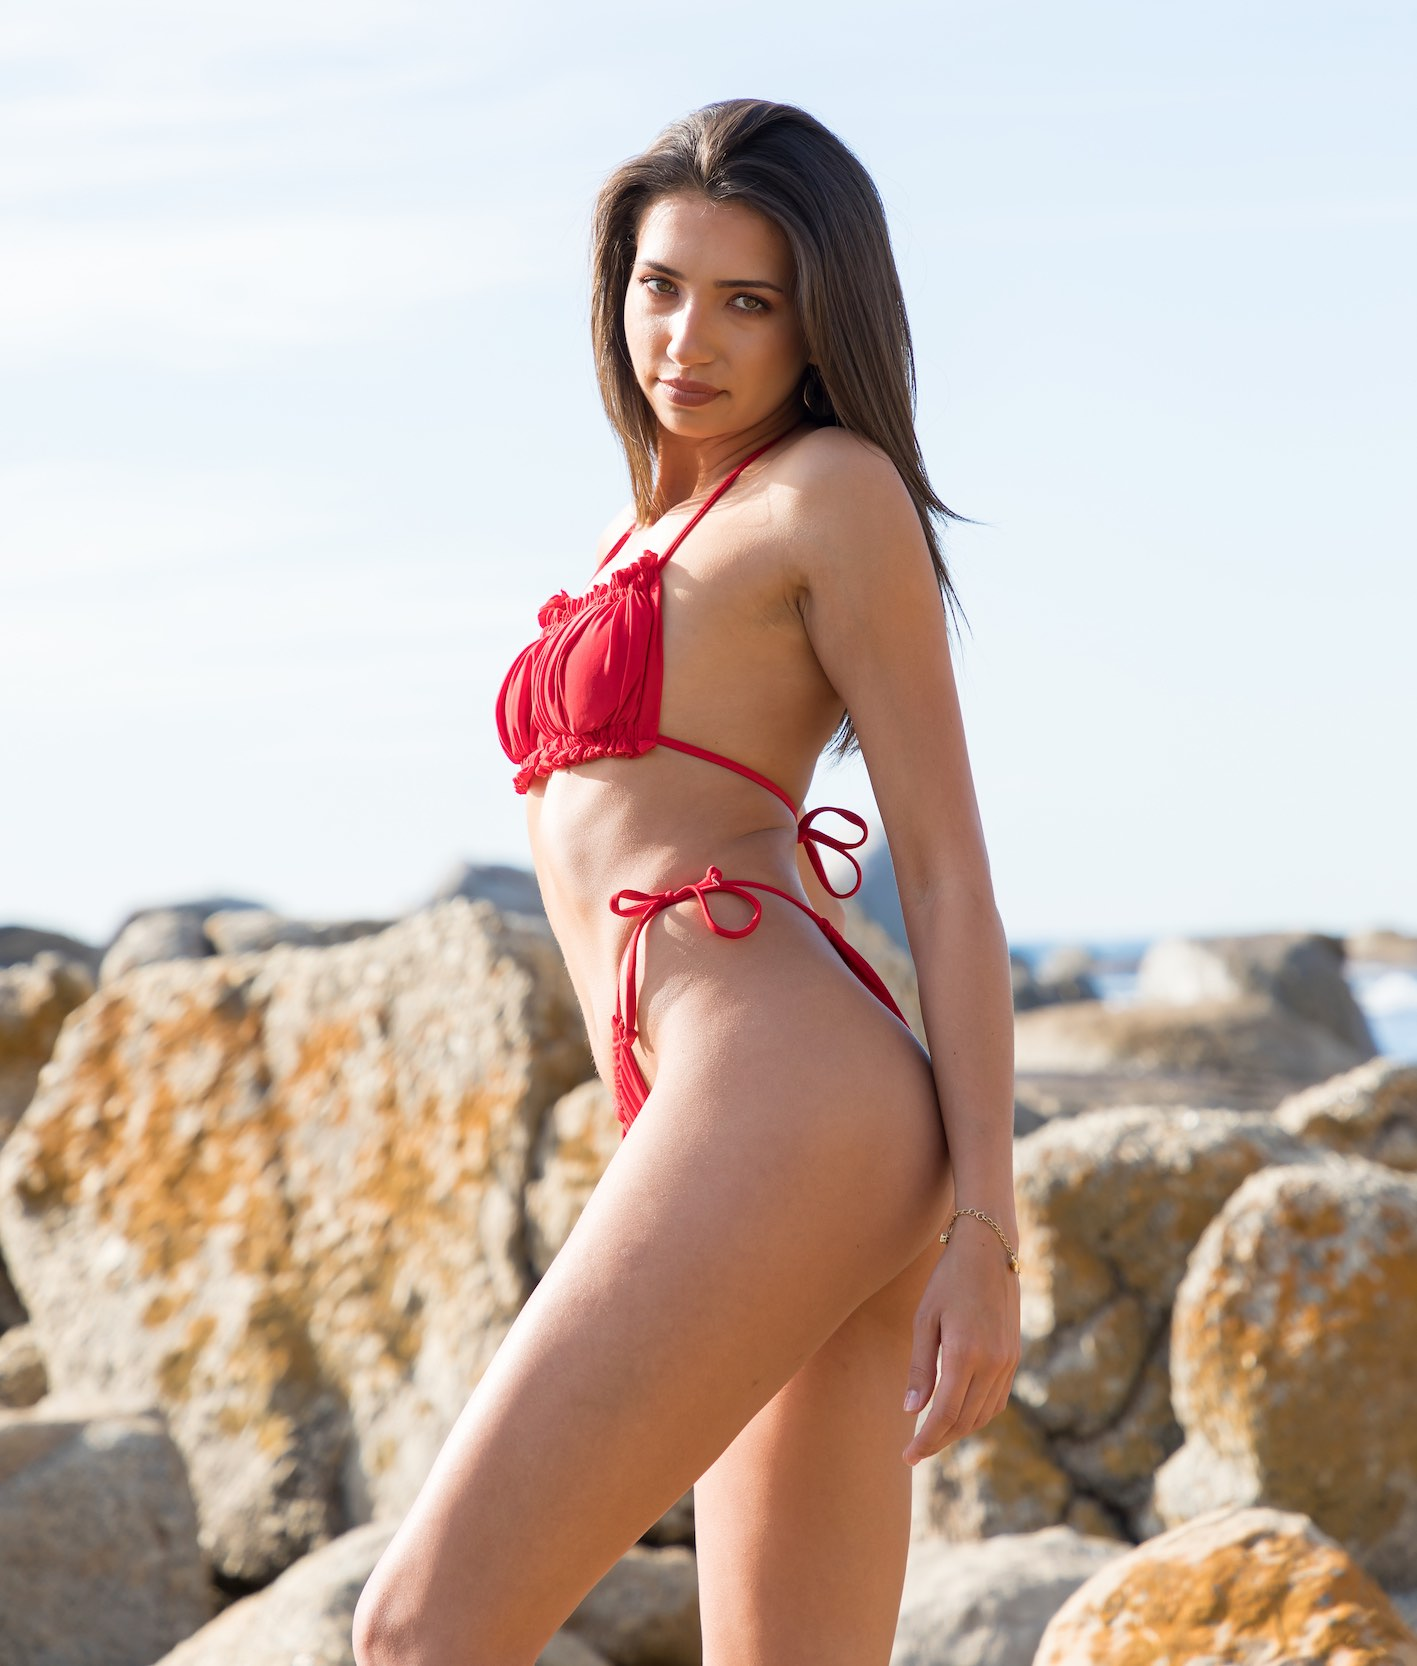 Our SA Babes feature with Tarryn Grung